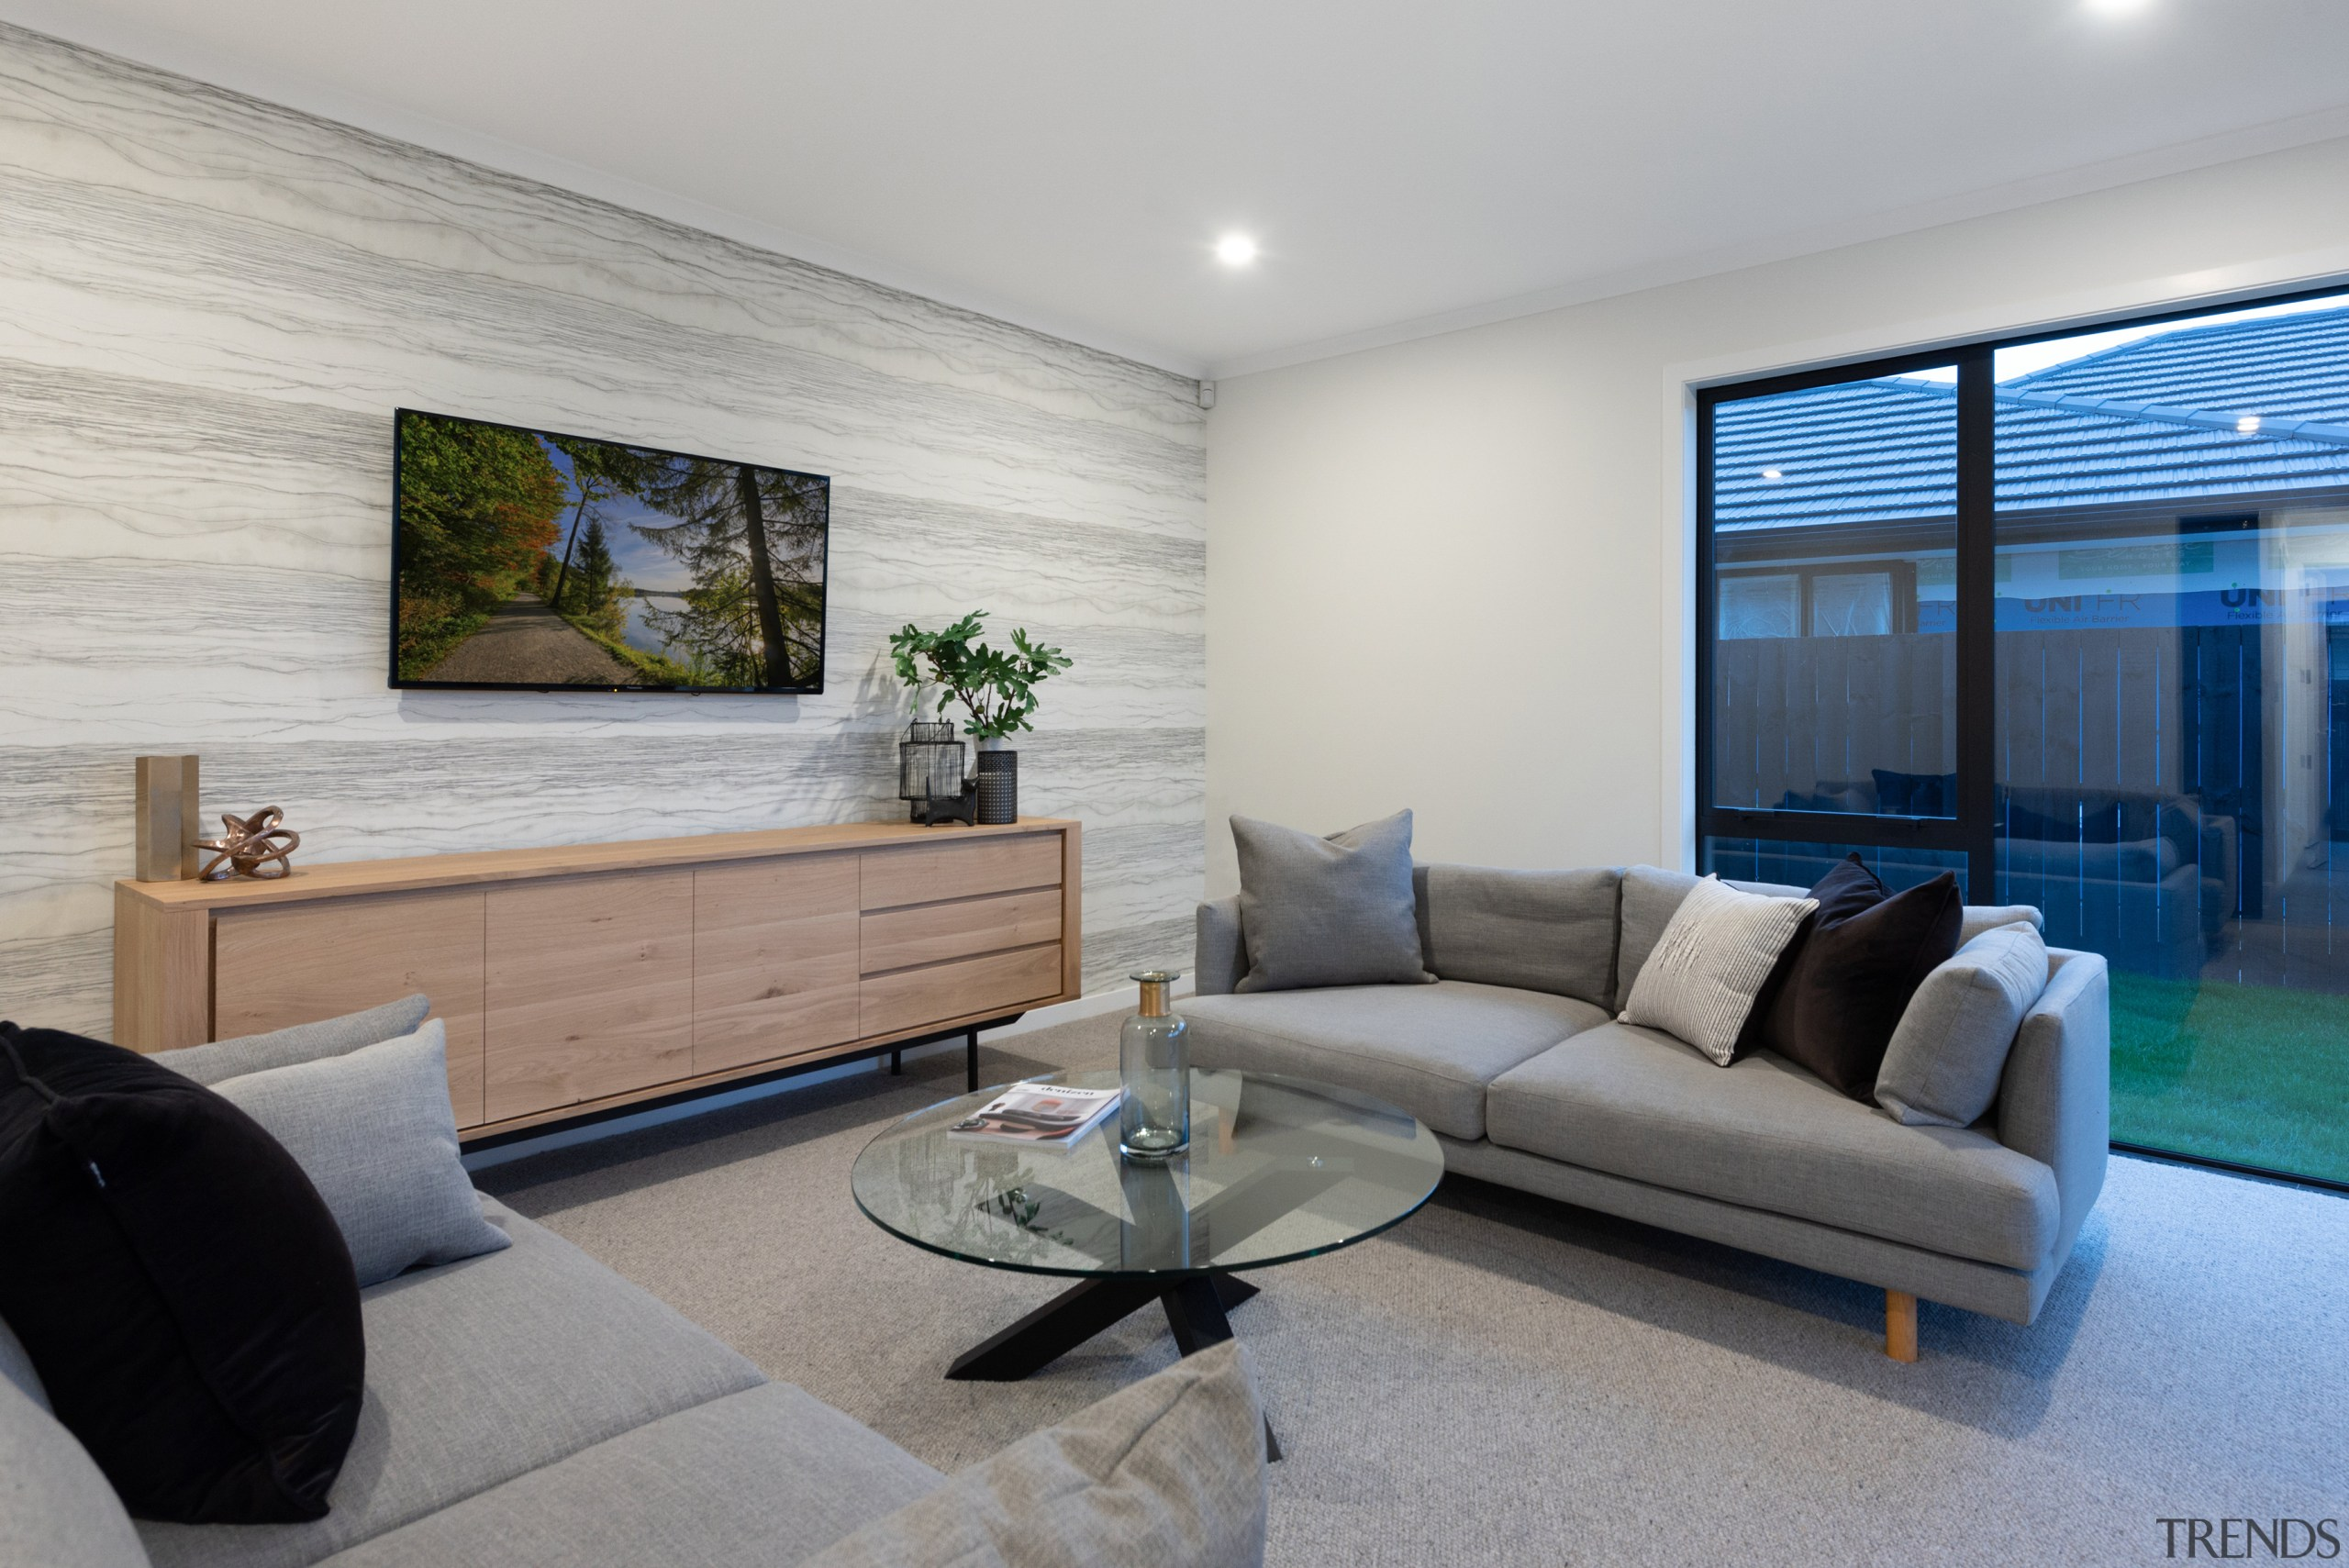 Along with the adjacent open-plan living spaces, the